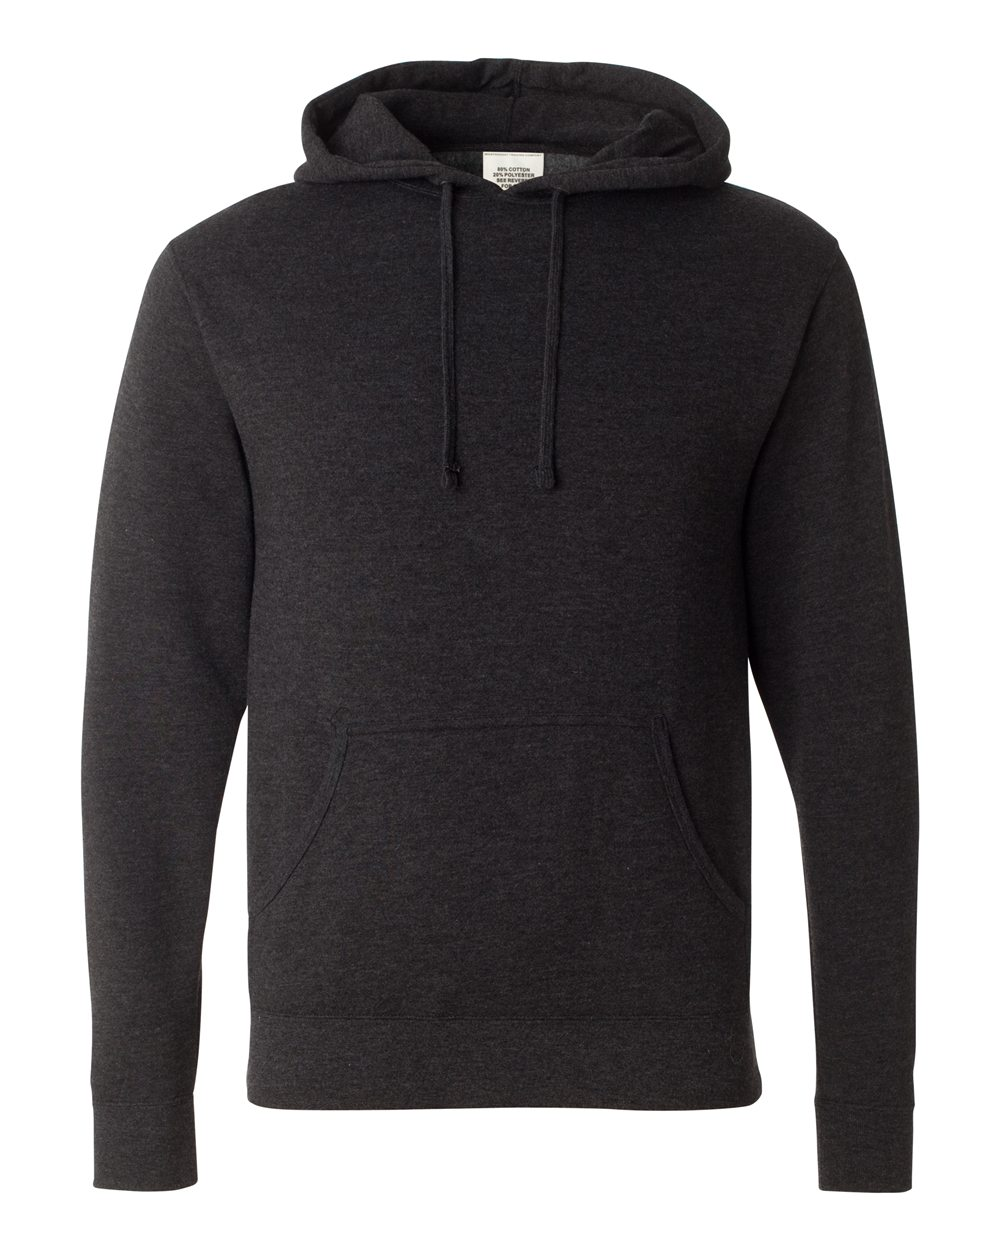 Independent_Trading_Co._AFX4000_Charcoal_Heather_Front_High.jpg